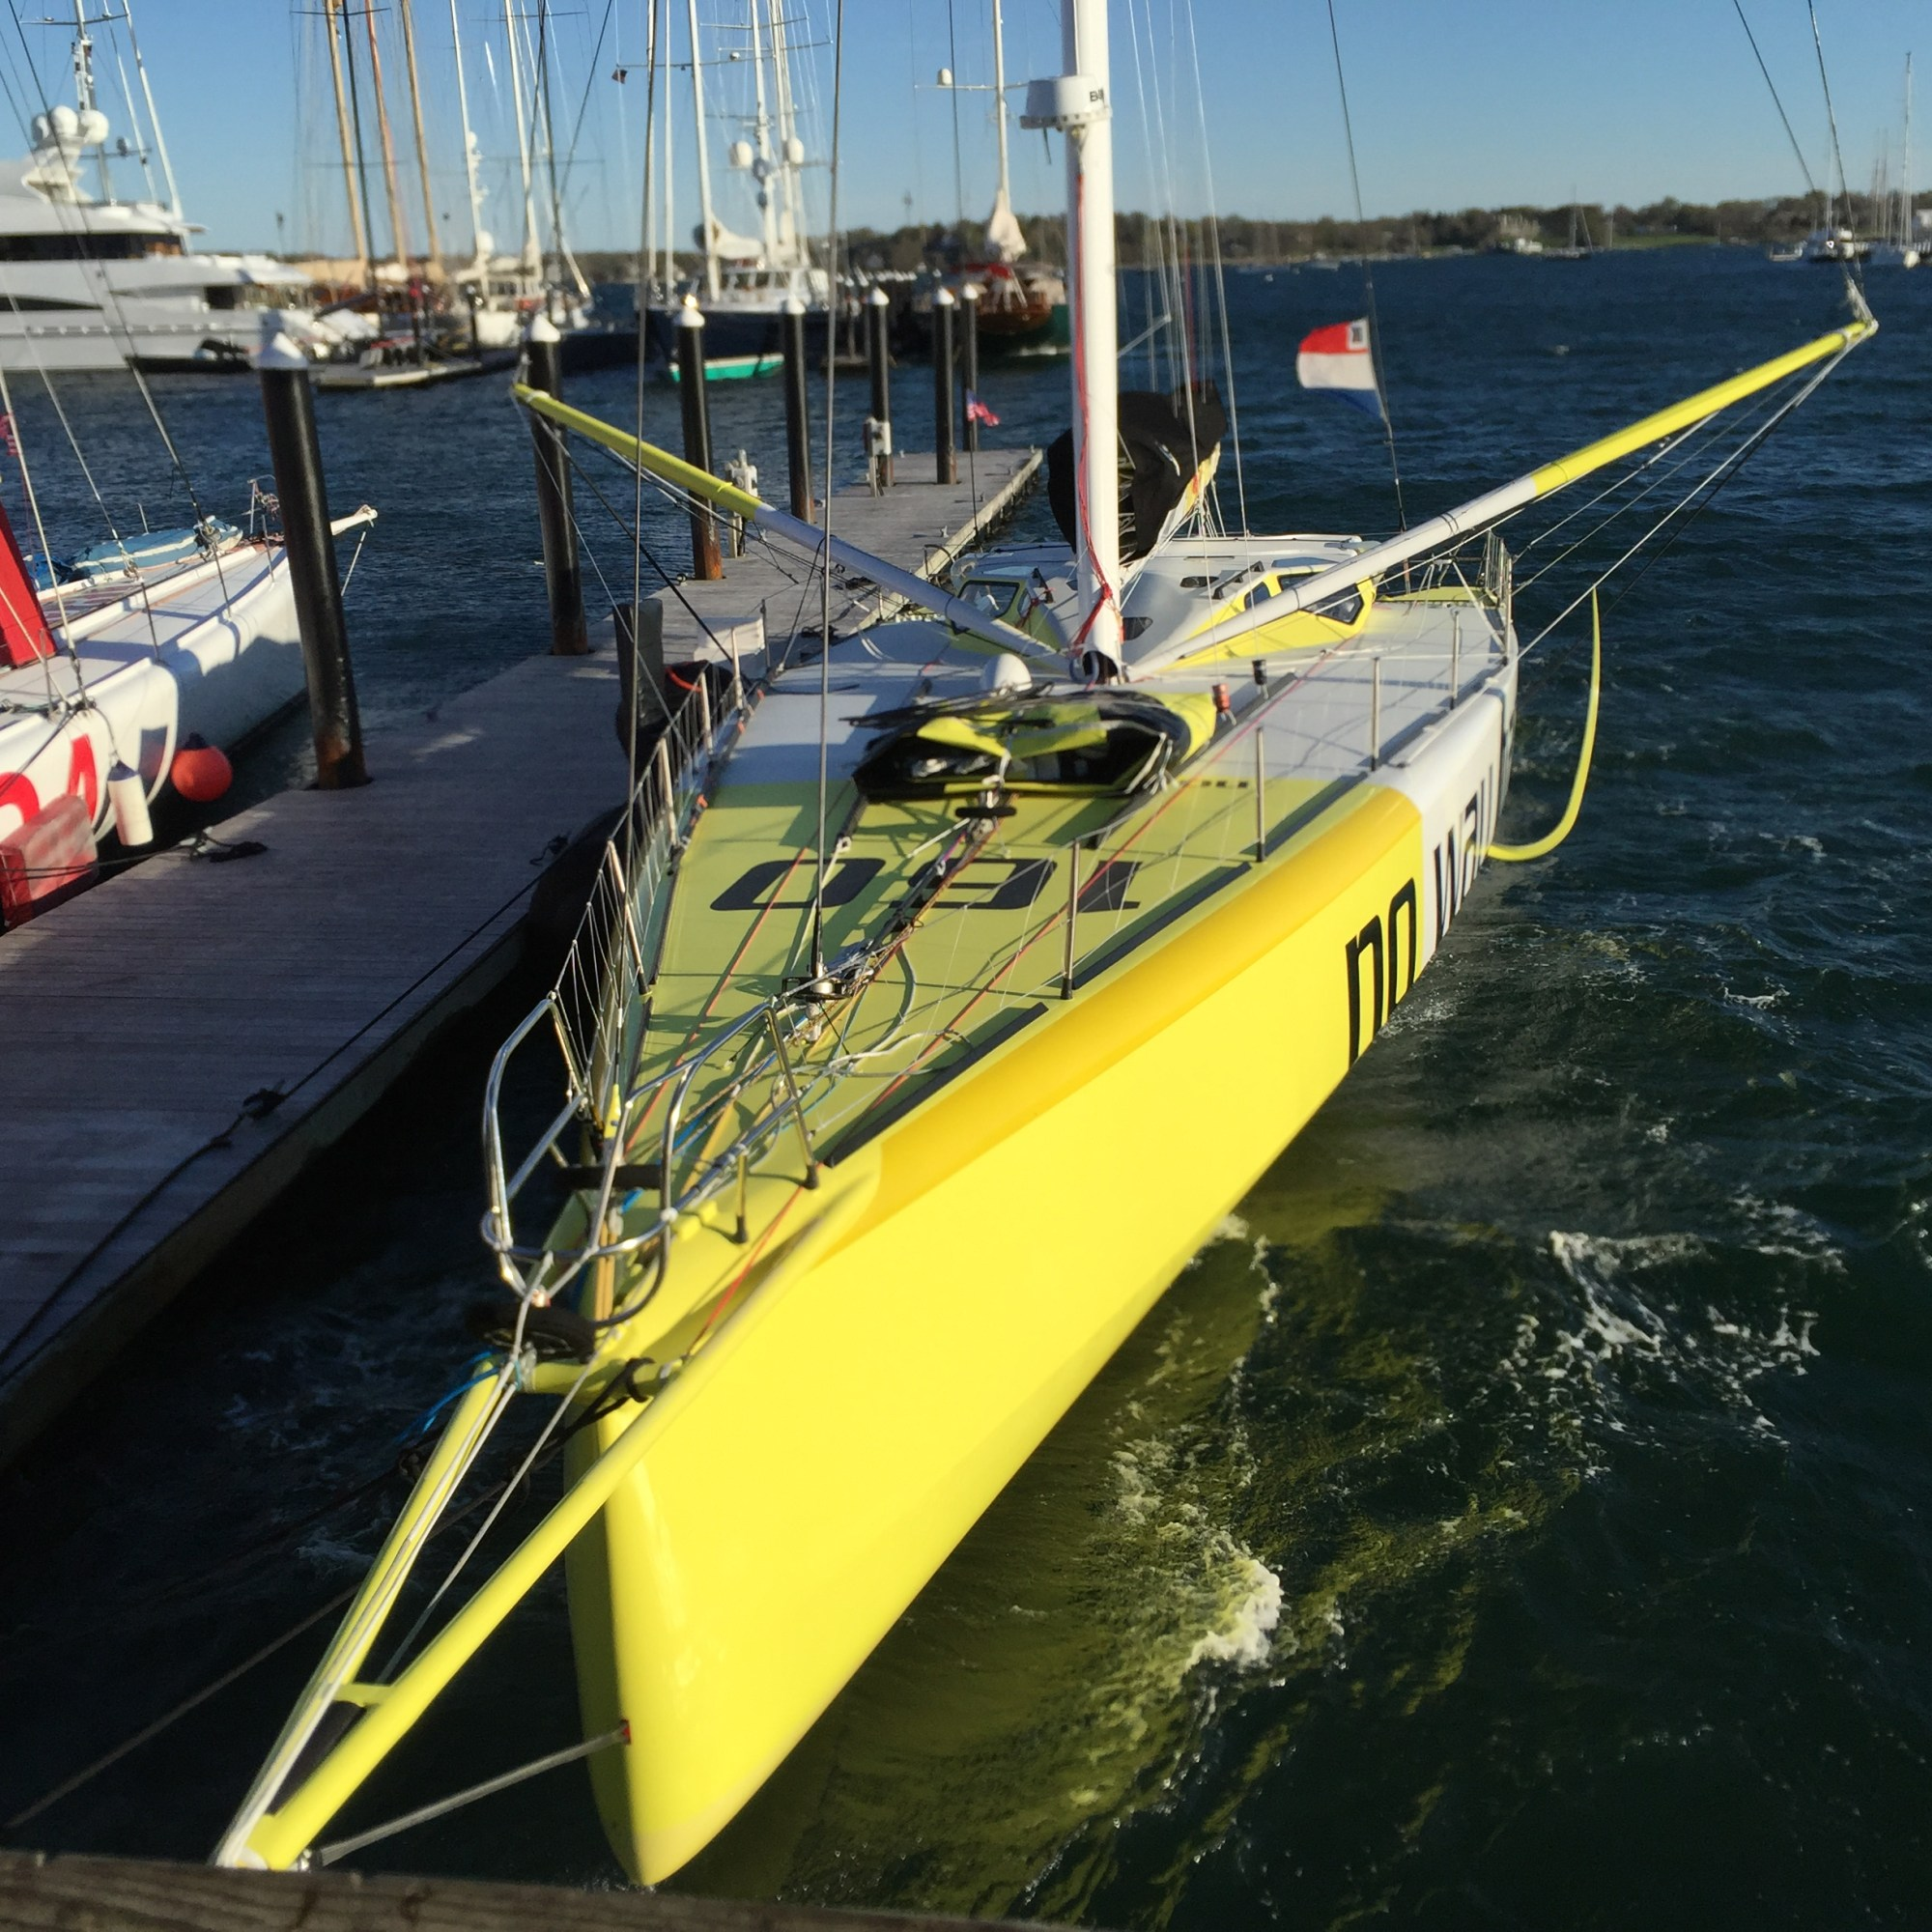 hight resolution of this latest generation imoca 60 has the now common deck spreaders and wing shection mast